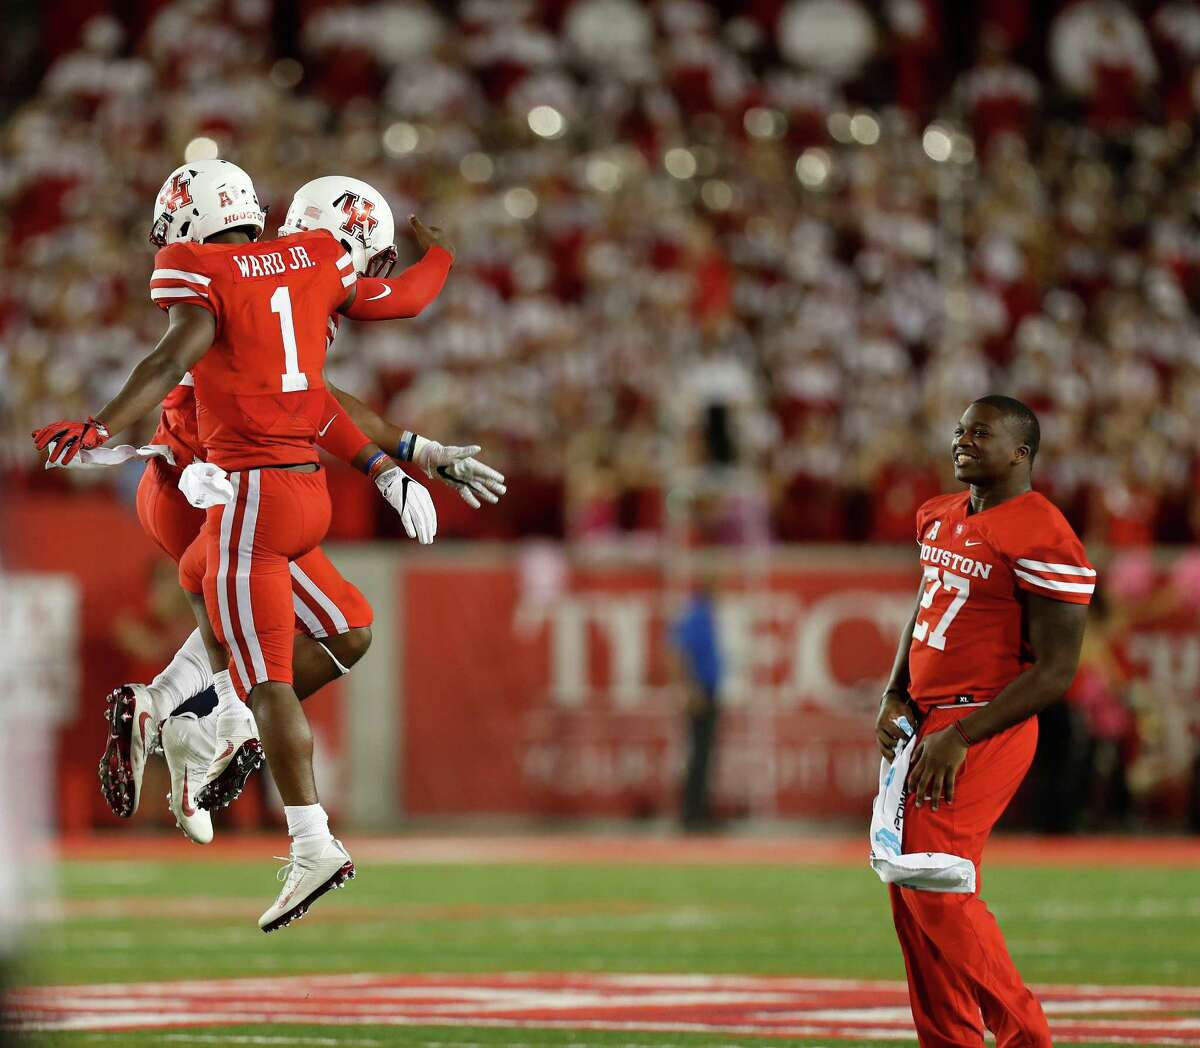 Houston Cougars safety Austin Robinson (22) and quarterback Greg Ward Jr. (1) celebrate after Robinson stopped Tulsa Golden Hurricane defensive tackle Jesse Brubaker (8) at the goal line in the final seconds of a tied game during the second half of an NCAA college football game at TDECU Stadium, Saturday,Oct. 15, 2016 in Pearland.